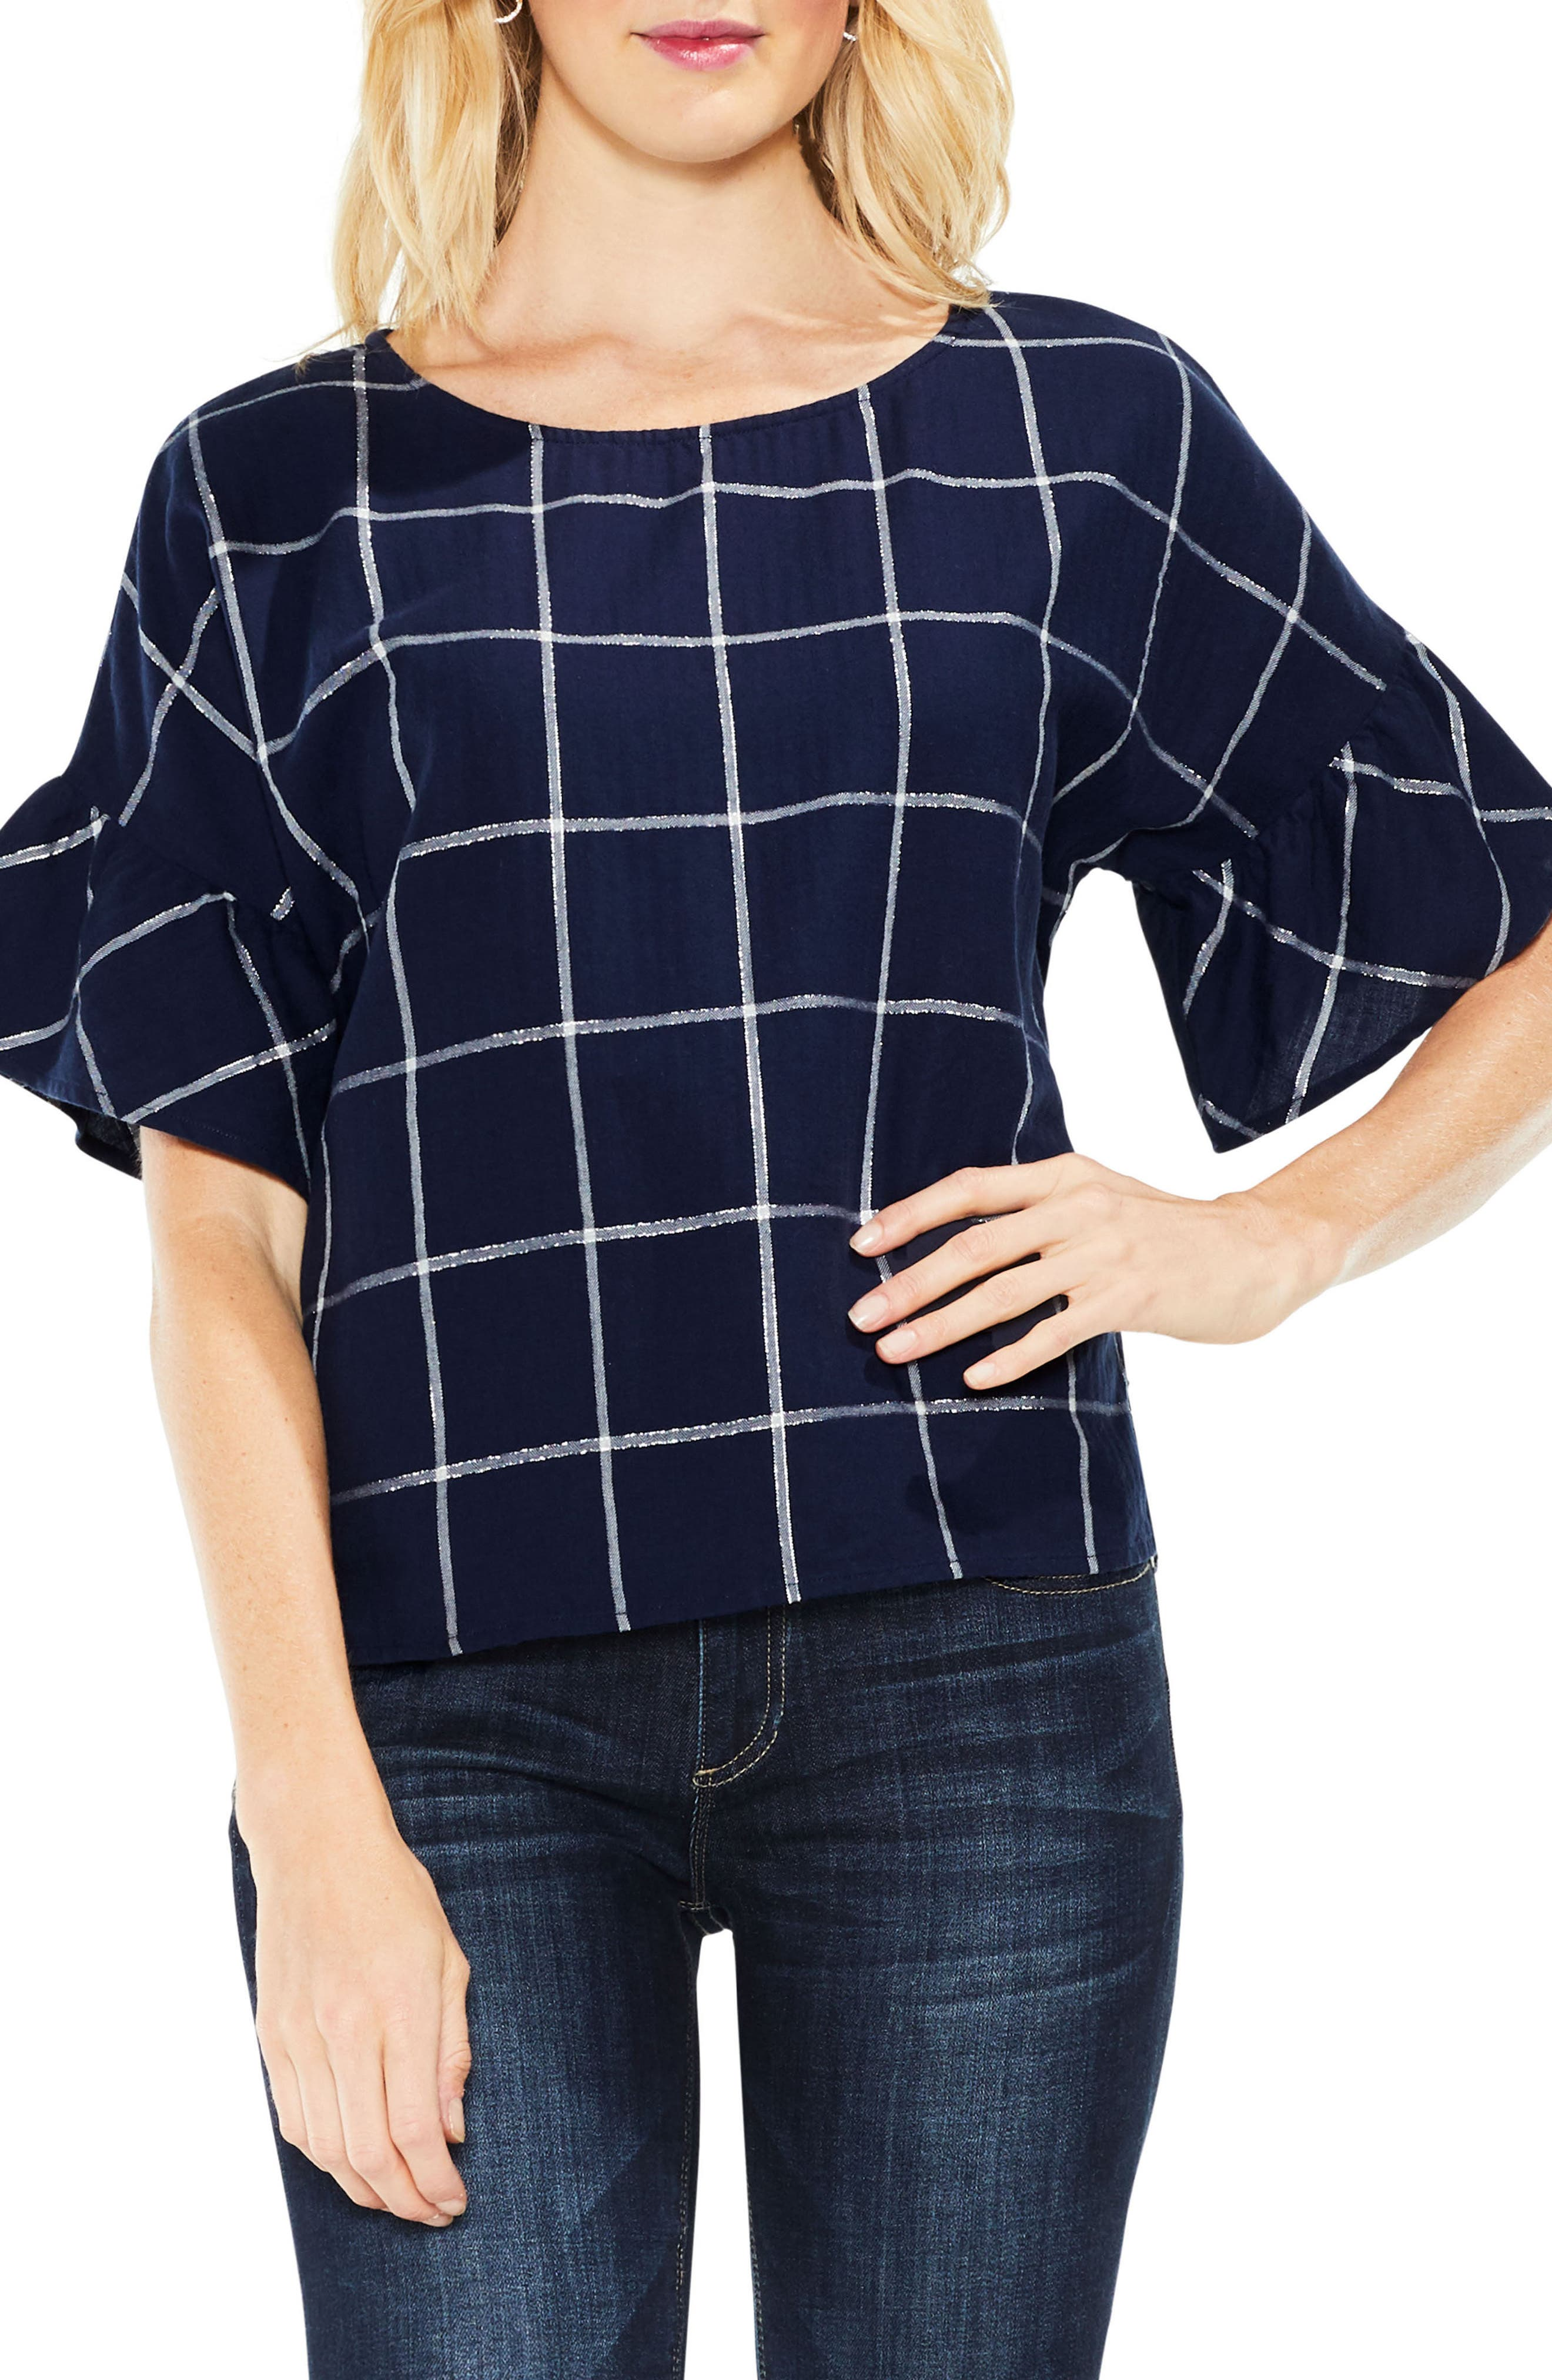 Alternate Image 1 Selected - Two by Vince Camuto Ruffle Sleeve Windowpane Top